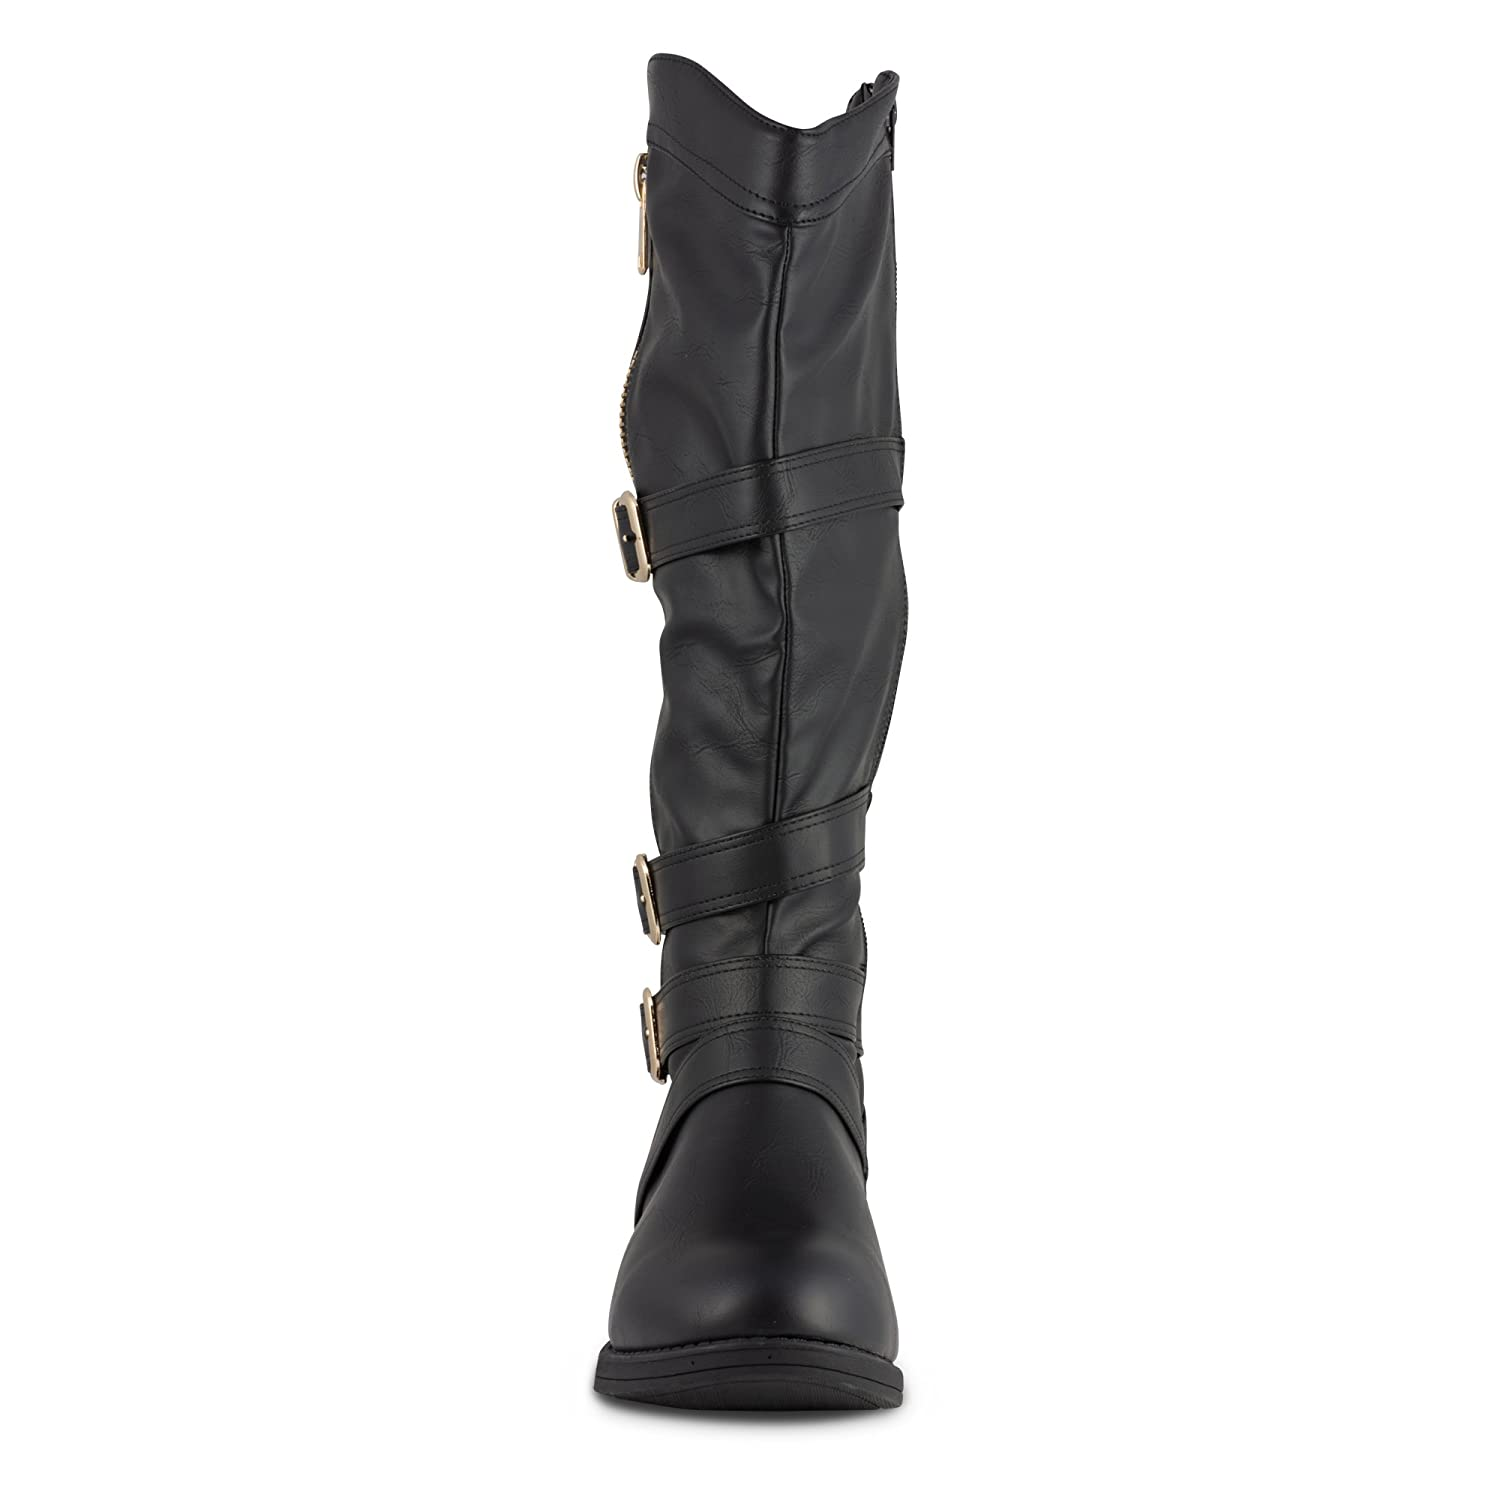 Twisted Women's AMIRA Wide Width/Wide Calf Flat Faux Leather Knee-High Western Flat Calf Riding Boot with Multi Buckle Straps B012H7F4VS 12 W US Women|Black 3cc9f1